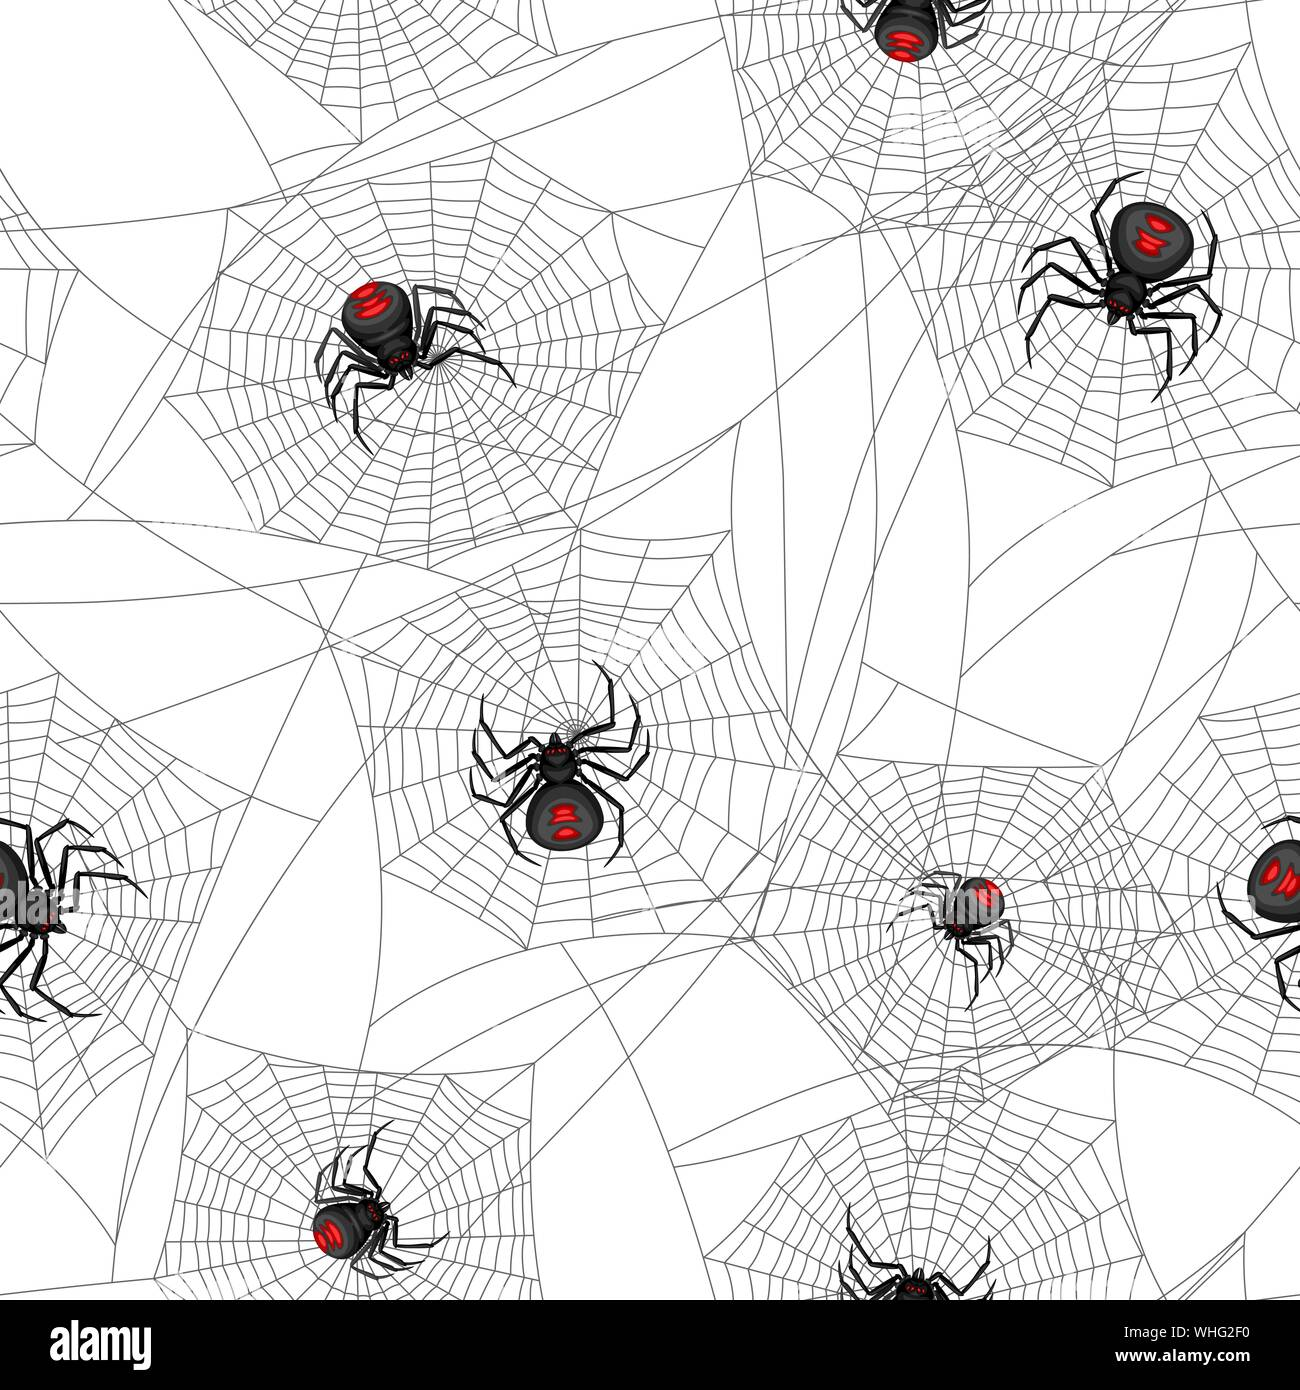 Seamless Pattern With Black Widow Spiders Stock Vector Image Art Alamy